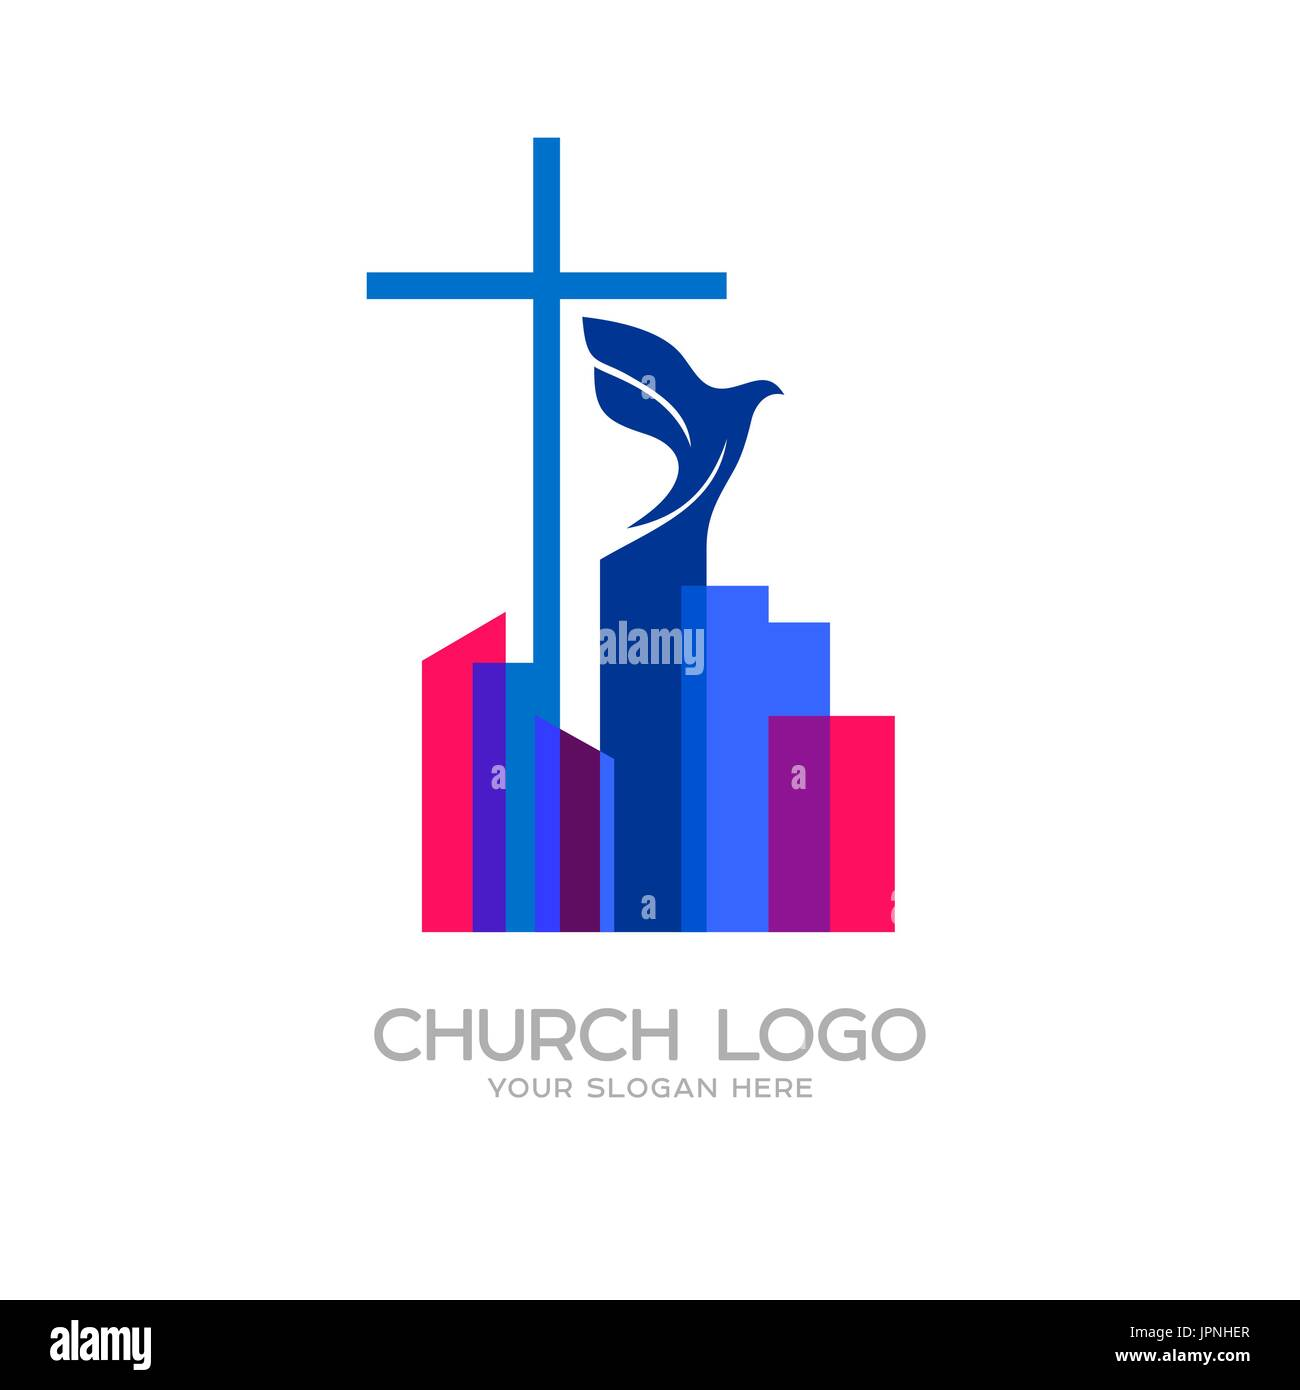 Church logo christian symbols the cross of jesus and the dove over church logo christian symbols the cross of jesus and the dove over the city altavistaventures Choice Image